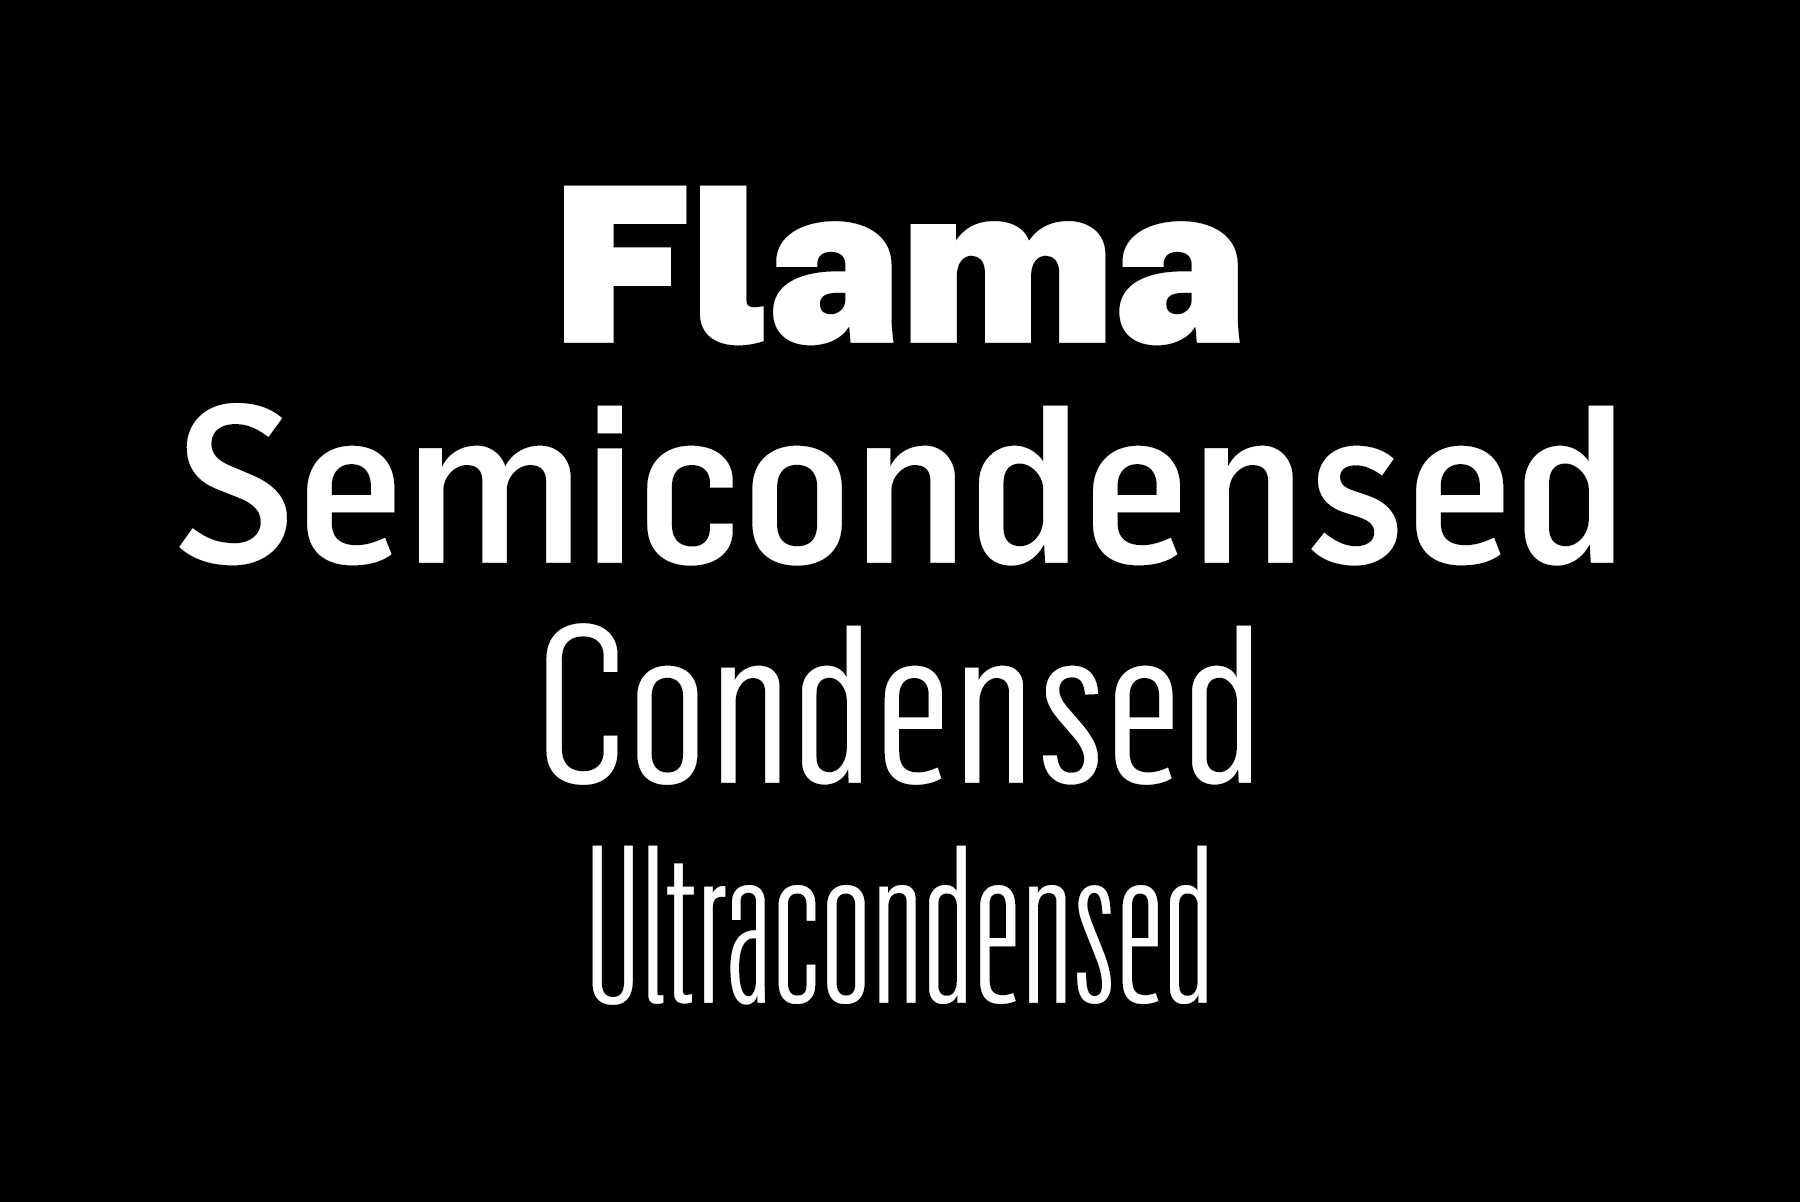 flama ultra-condensed